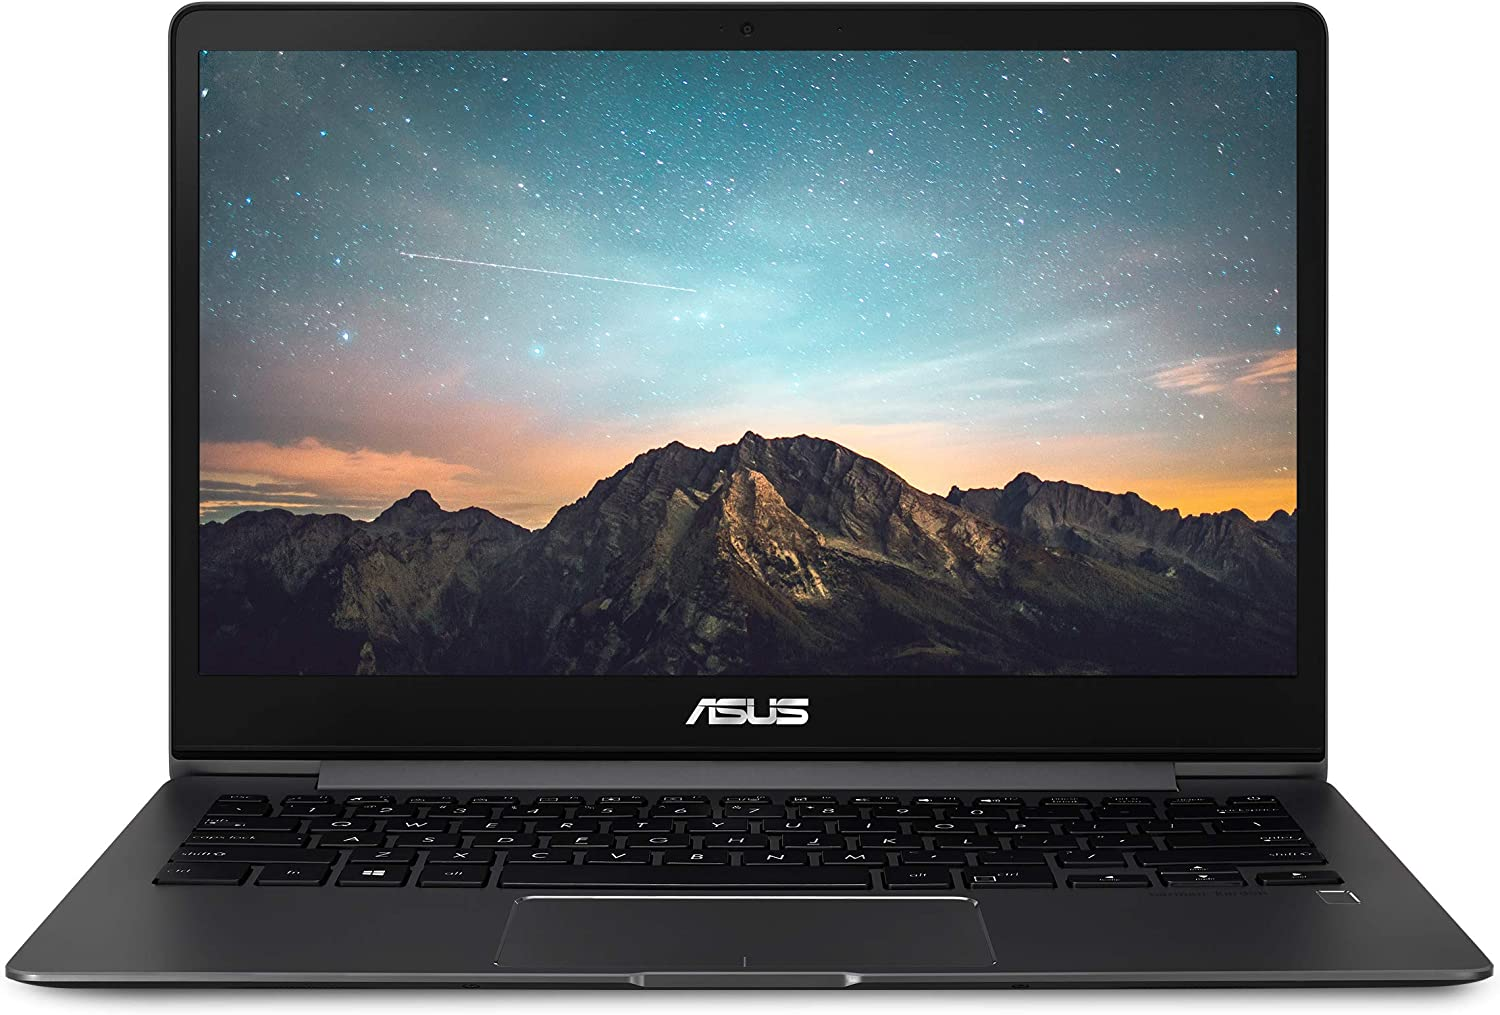 "ASUS ZenBook 13 Ultra-Slim Laptop 13.3"" FHD WideView Touch, 8th Gen Intel Core i5-8265U Processor, GeForce MX150, 8GB LPDDR3, 256GB SSD, Backlit KB, Fingerprint, Windows 10 - UX331FN-DH51T, Slate Grey"